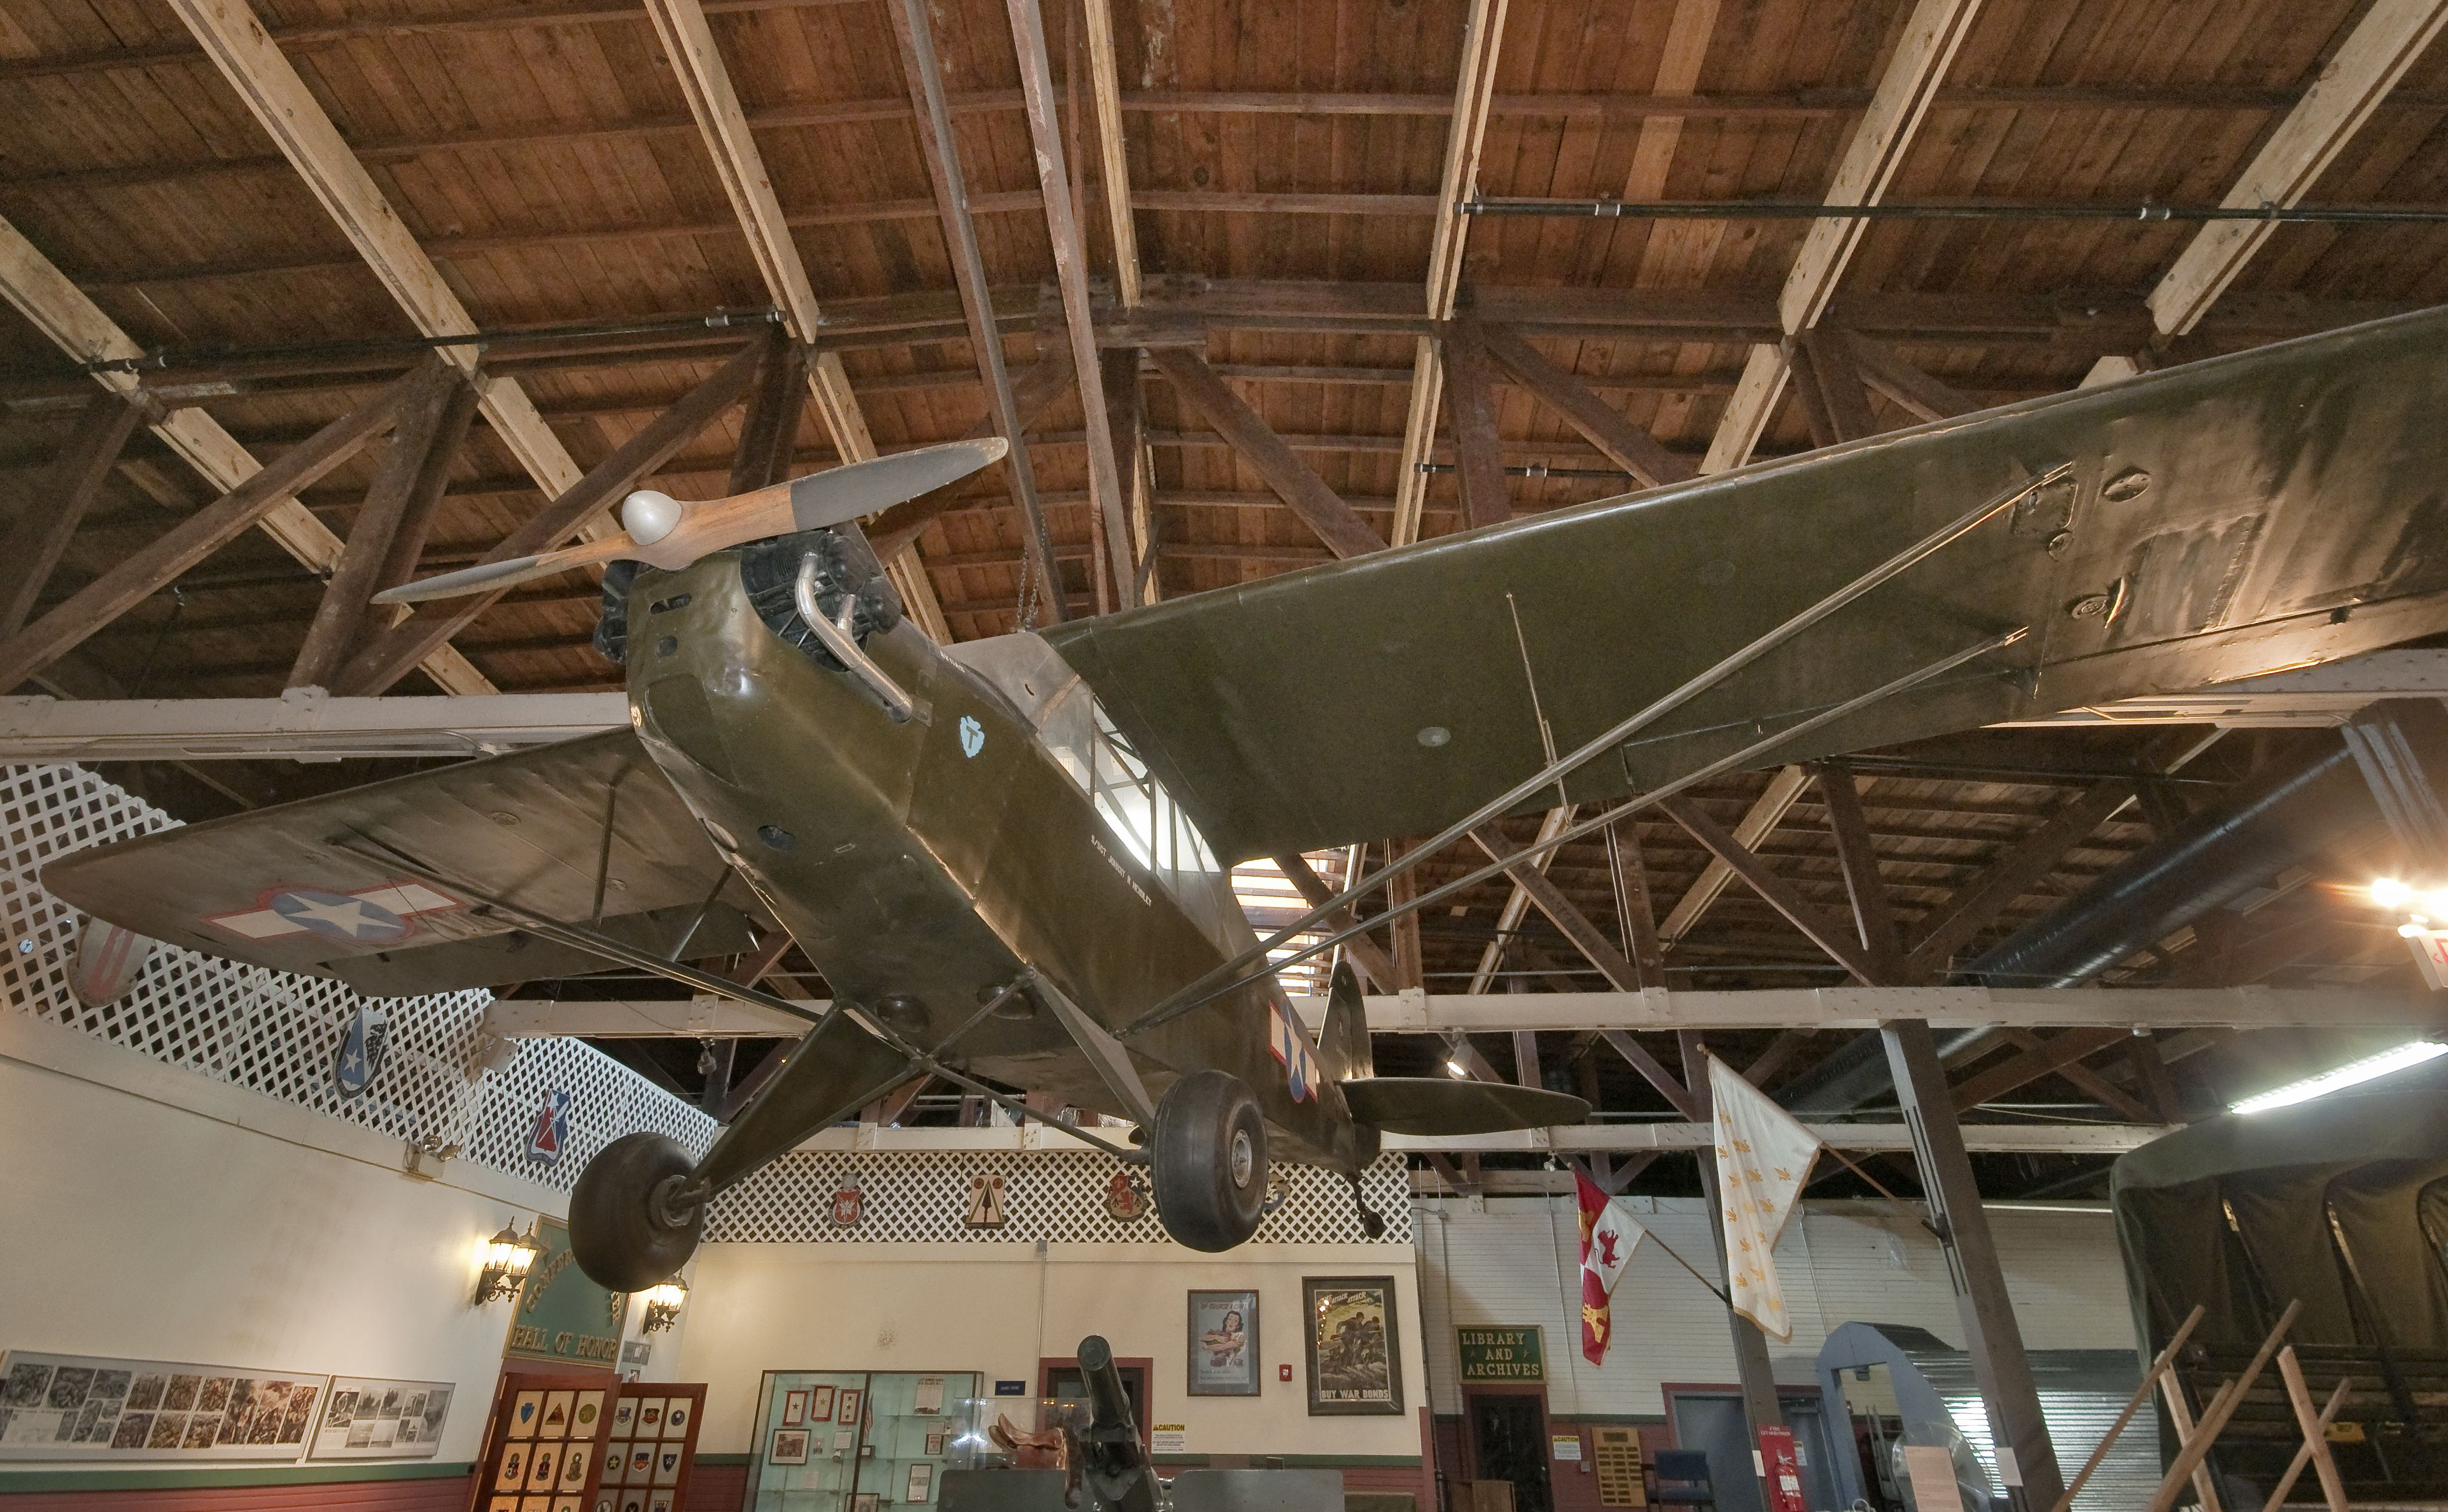 L4 Piper Cub liaison plane, Great Hall at Texas Military Forces Museum at Camp Mabry in Austin, Texas, USA